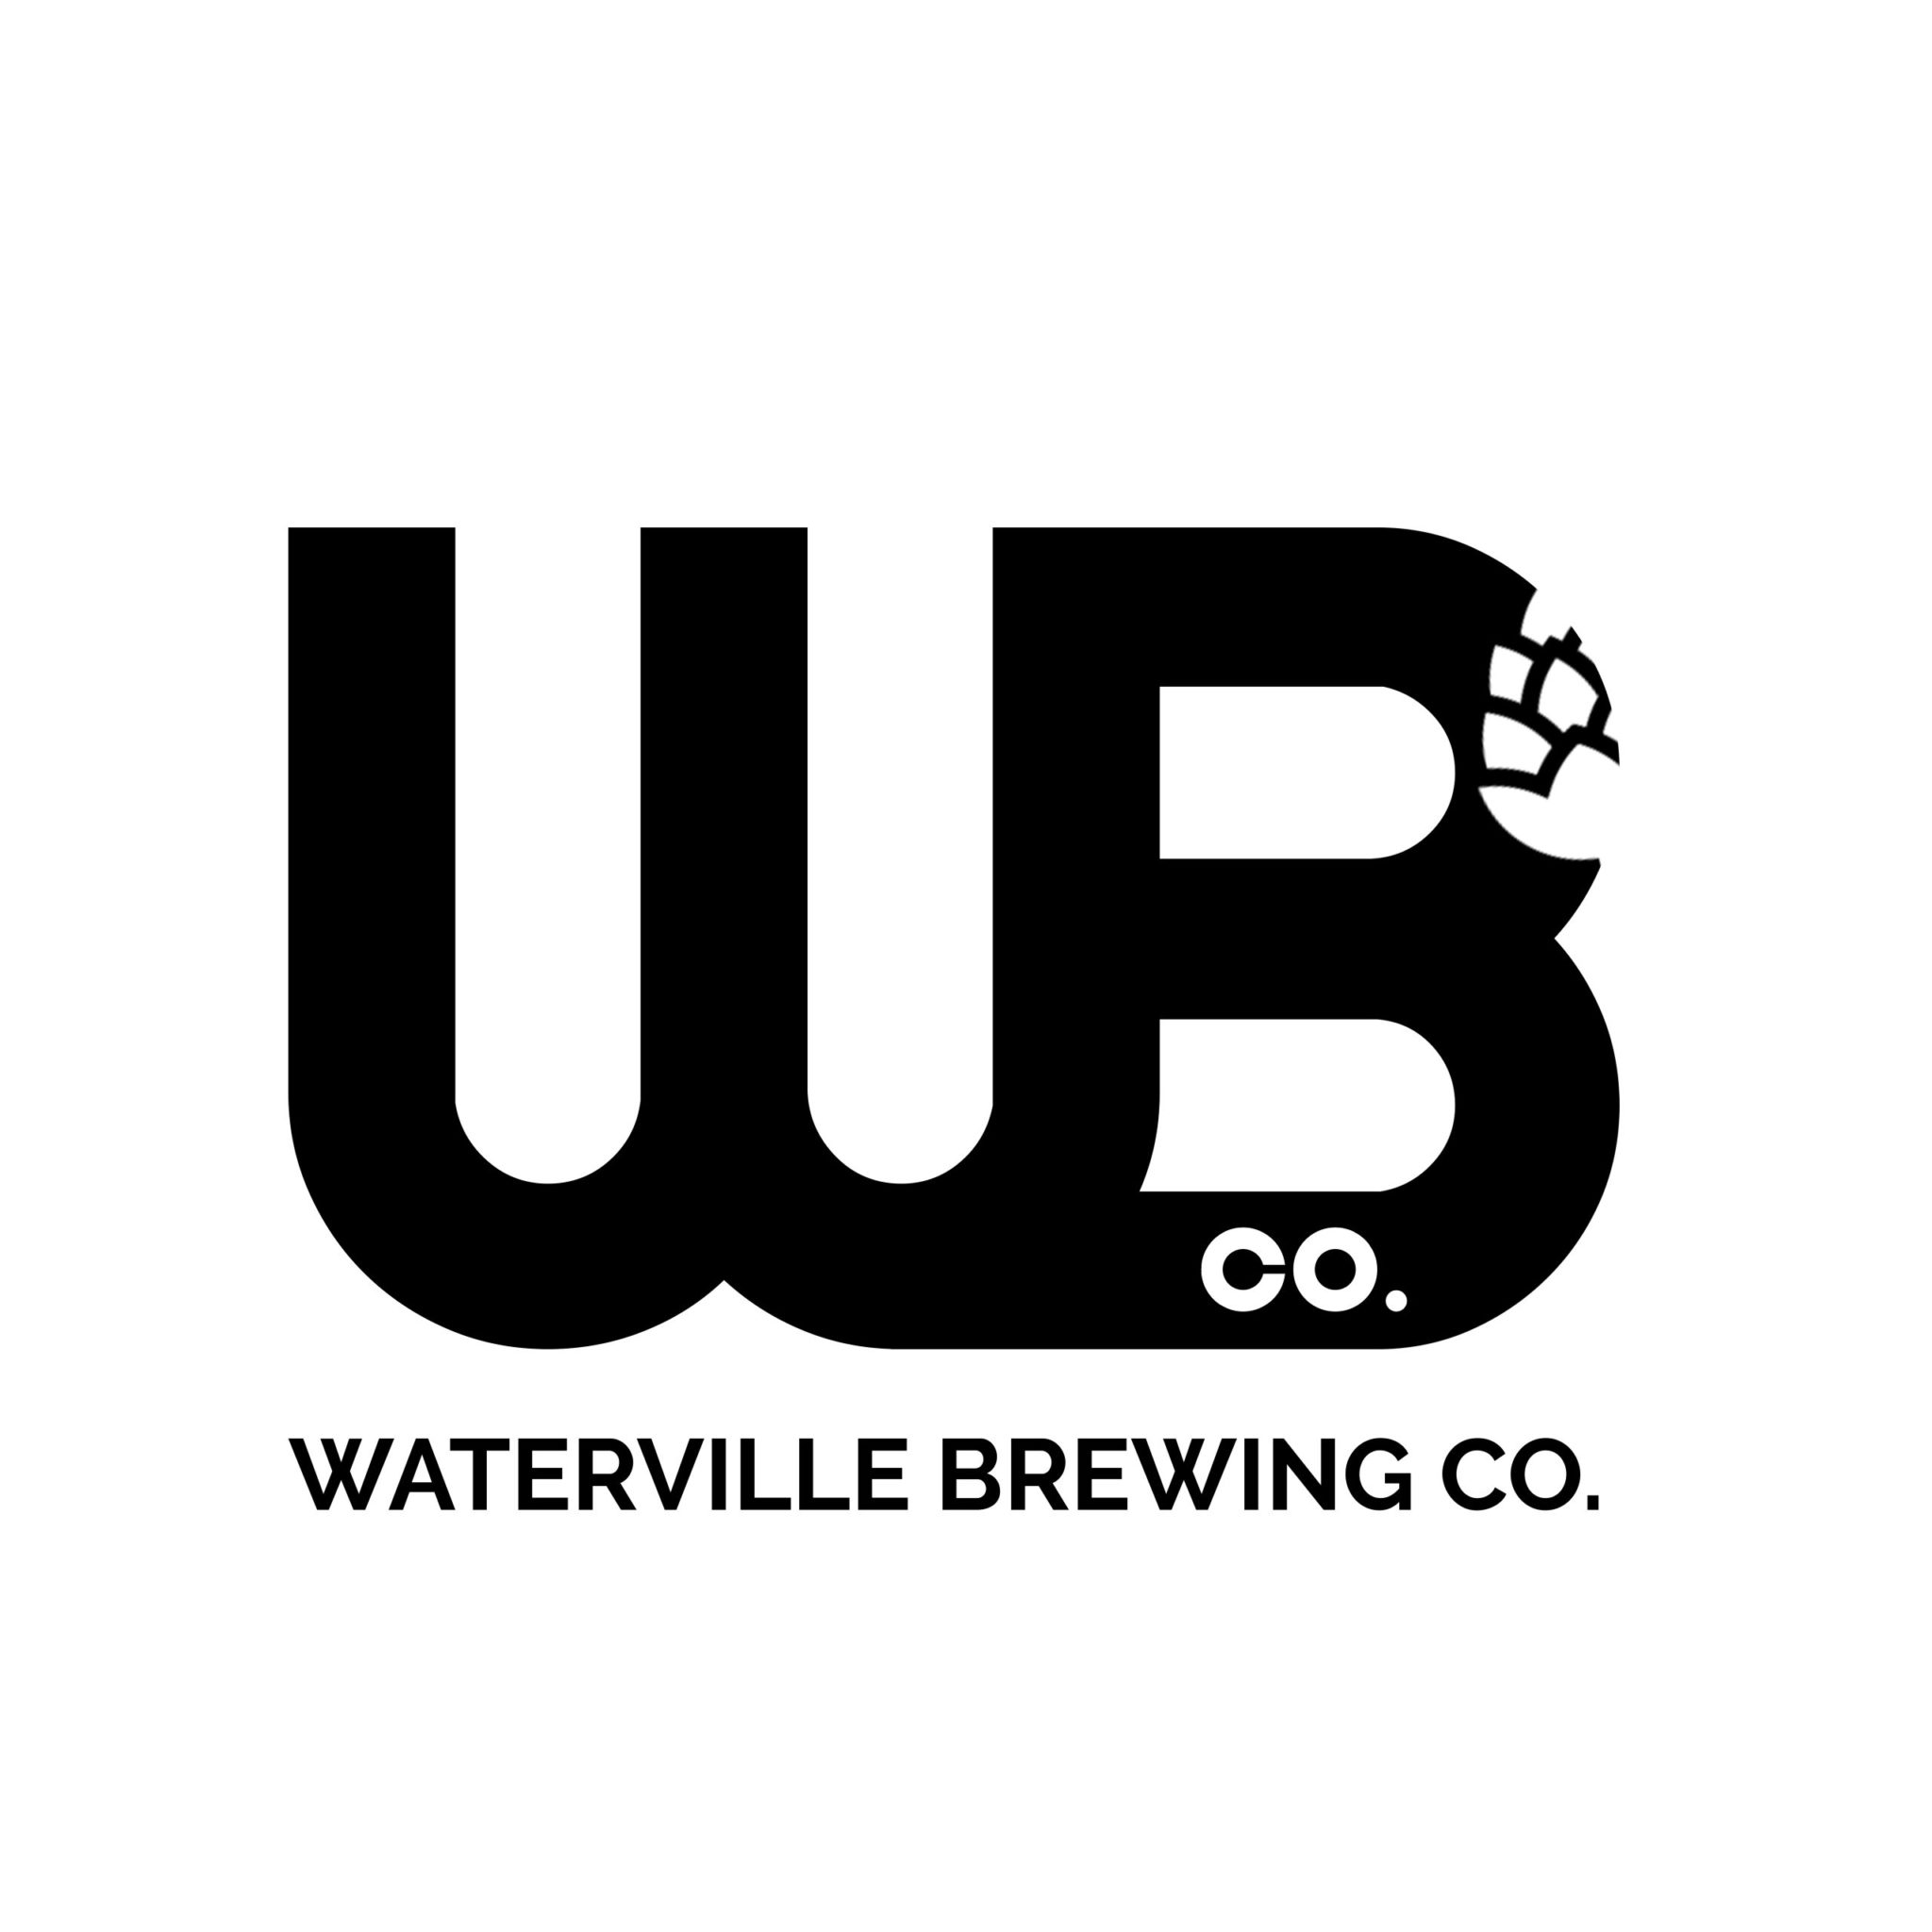 Waterville Brewing Company